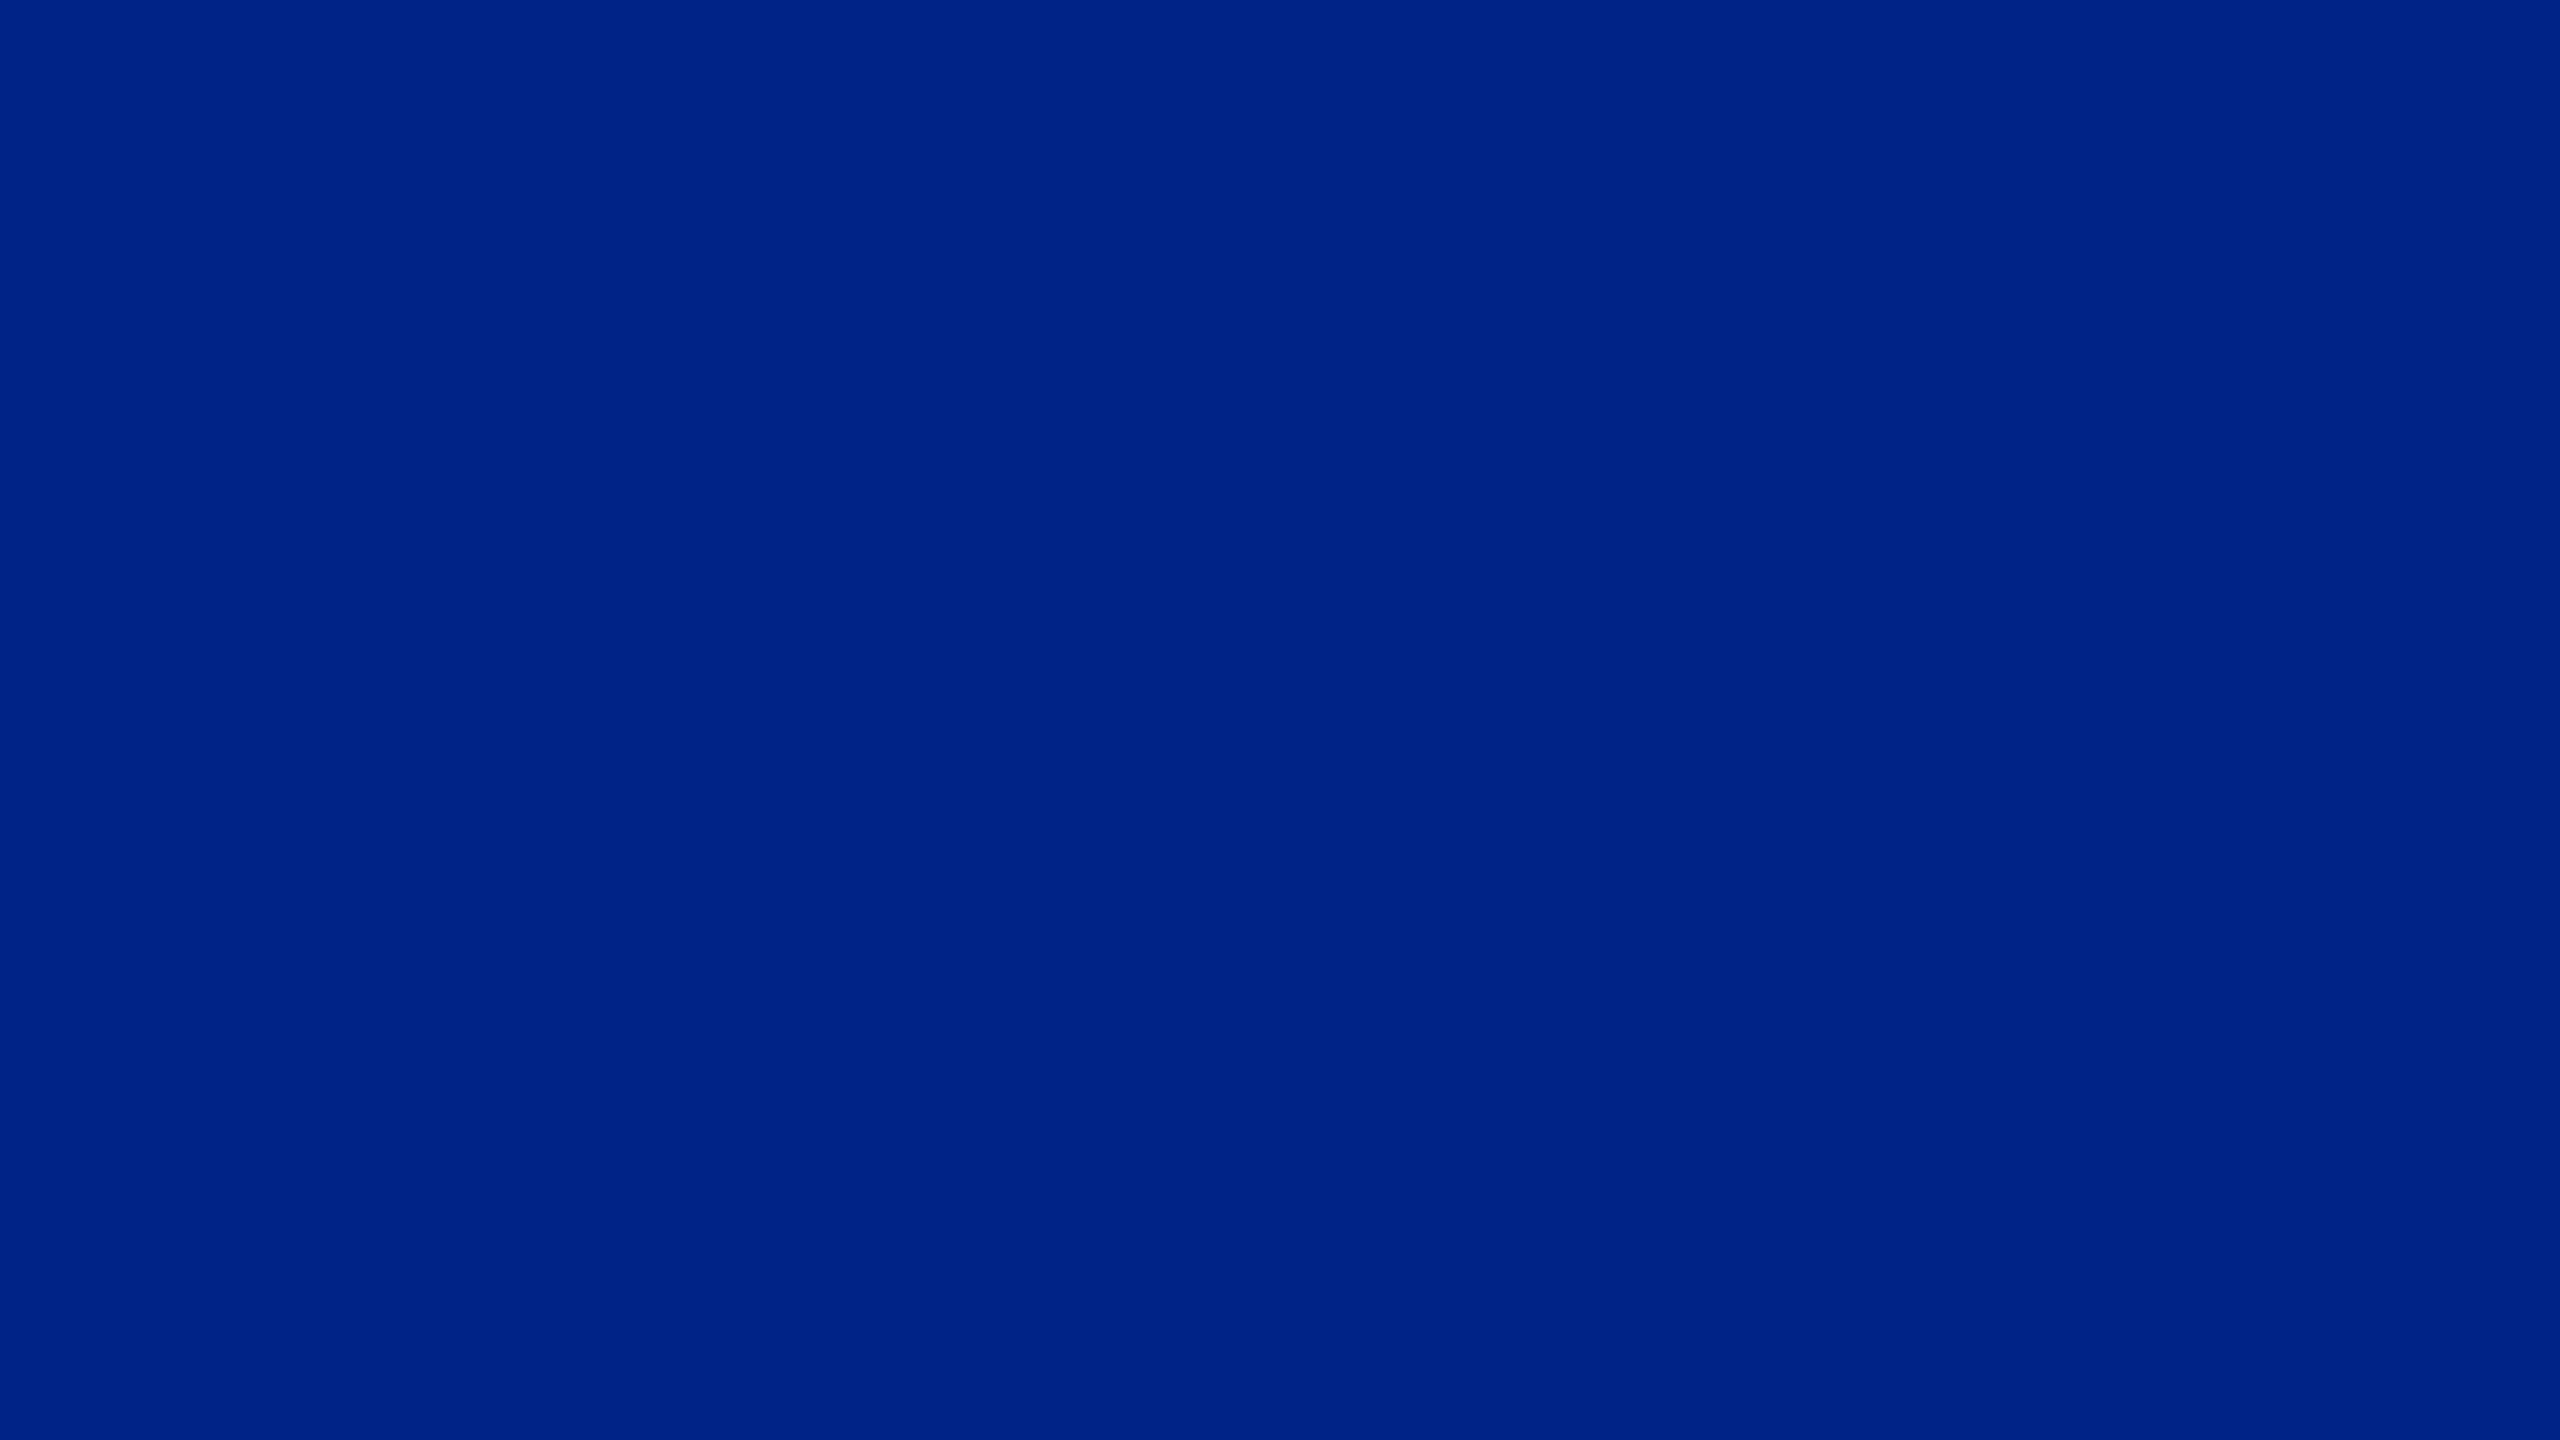 2560x1440 Resolution Blue Solid Color Background